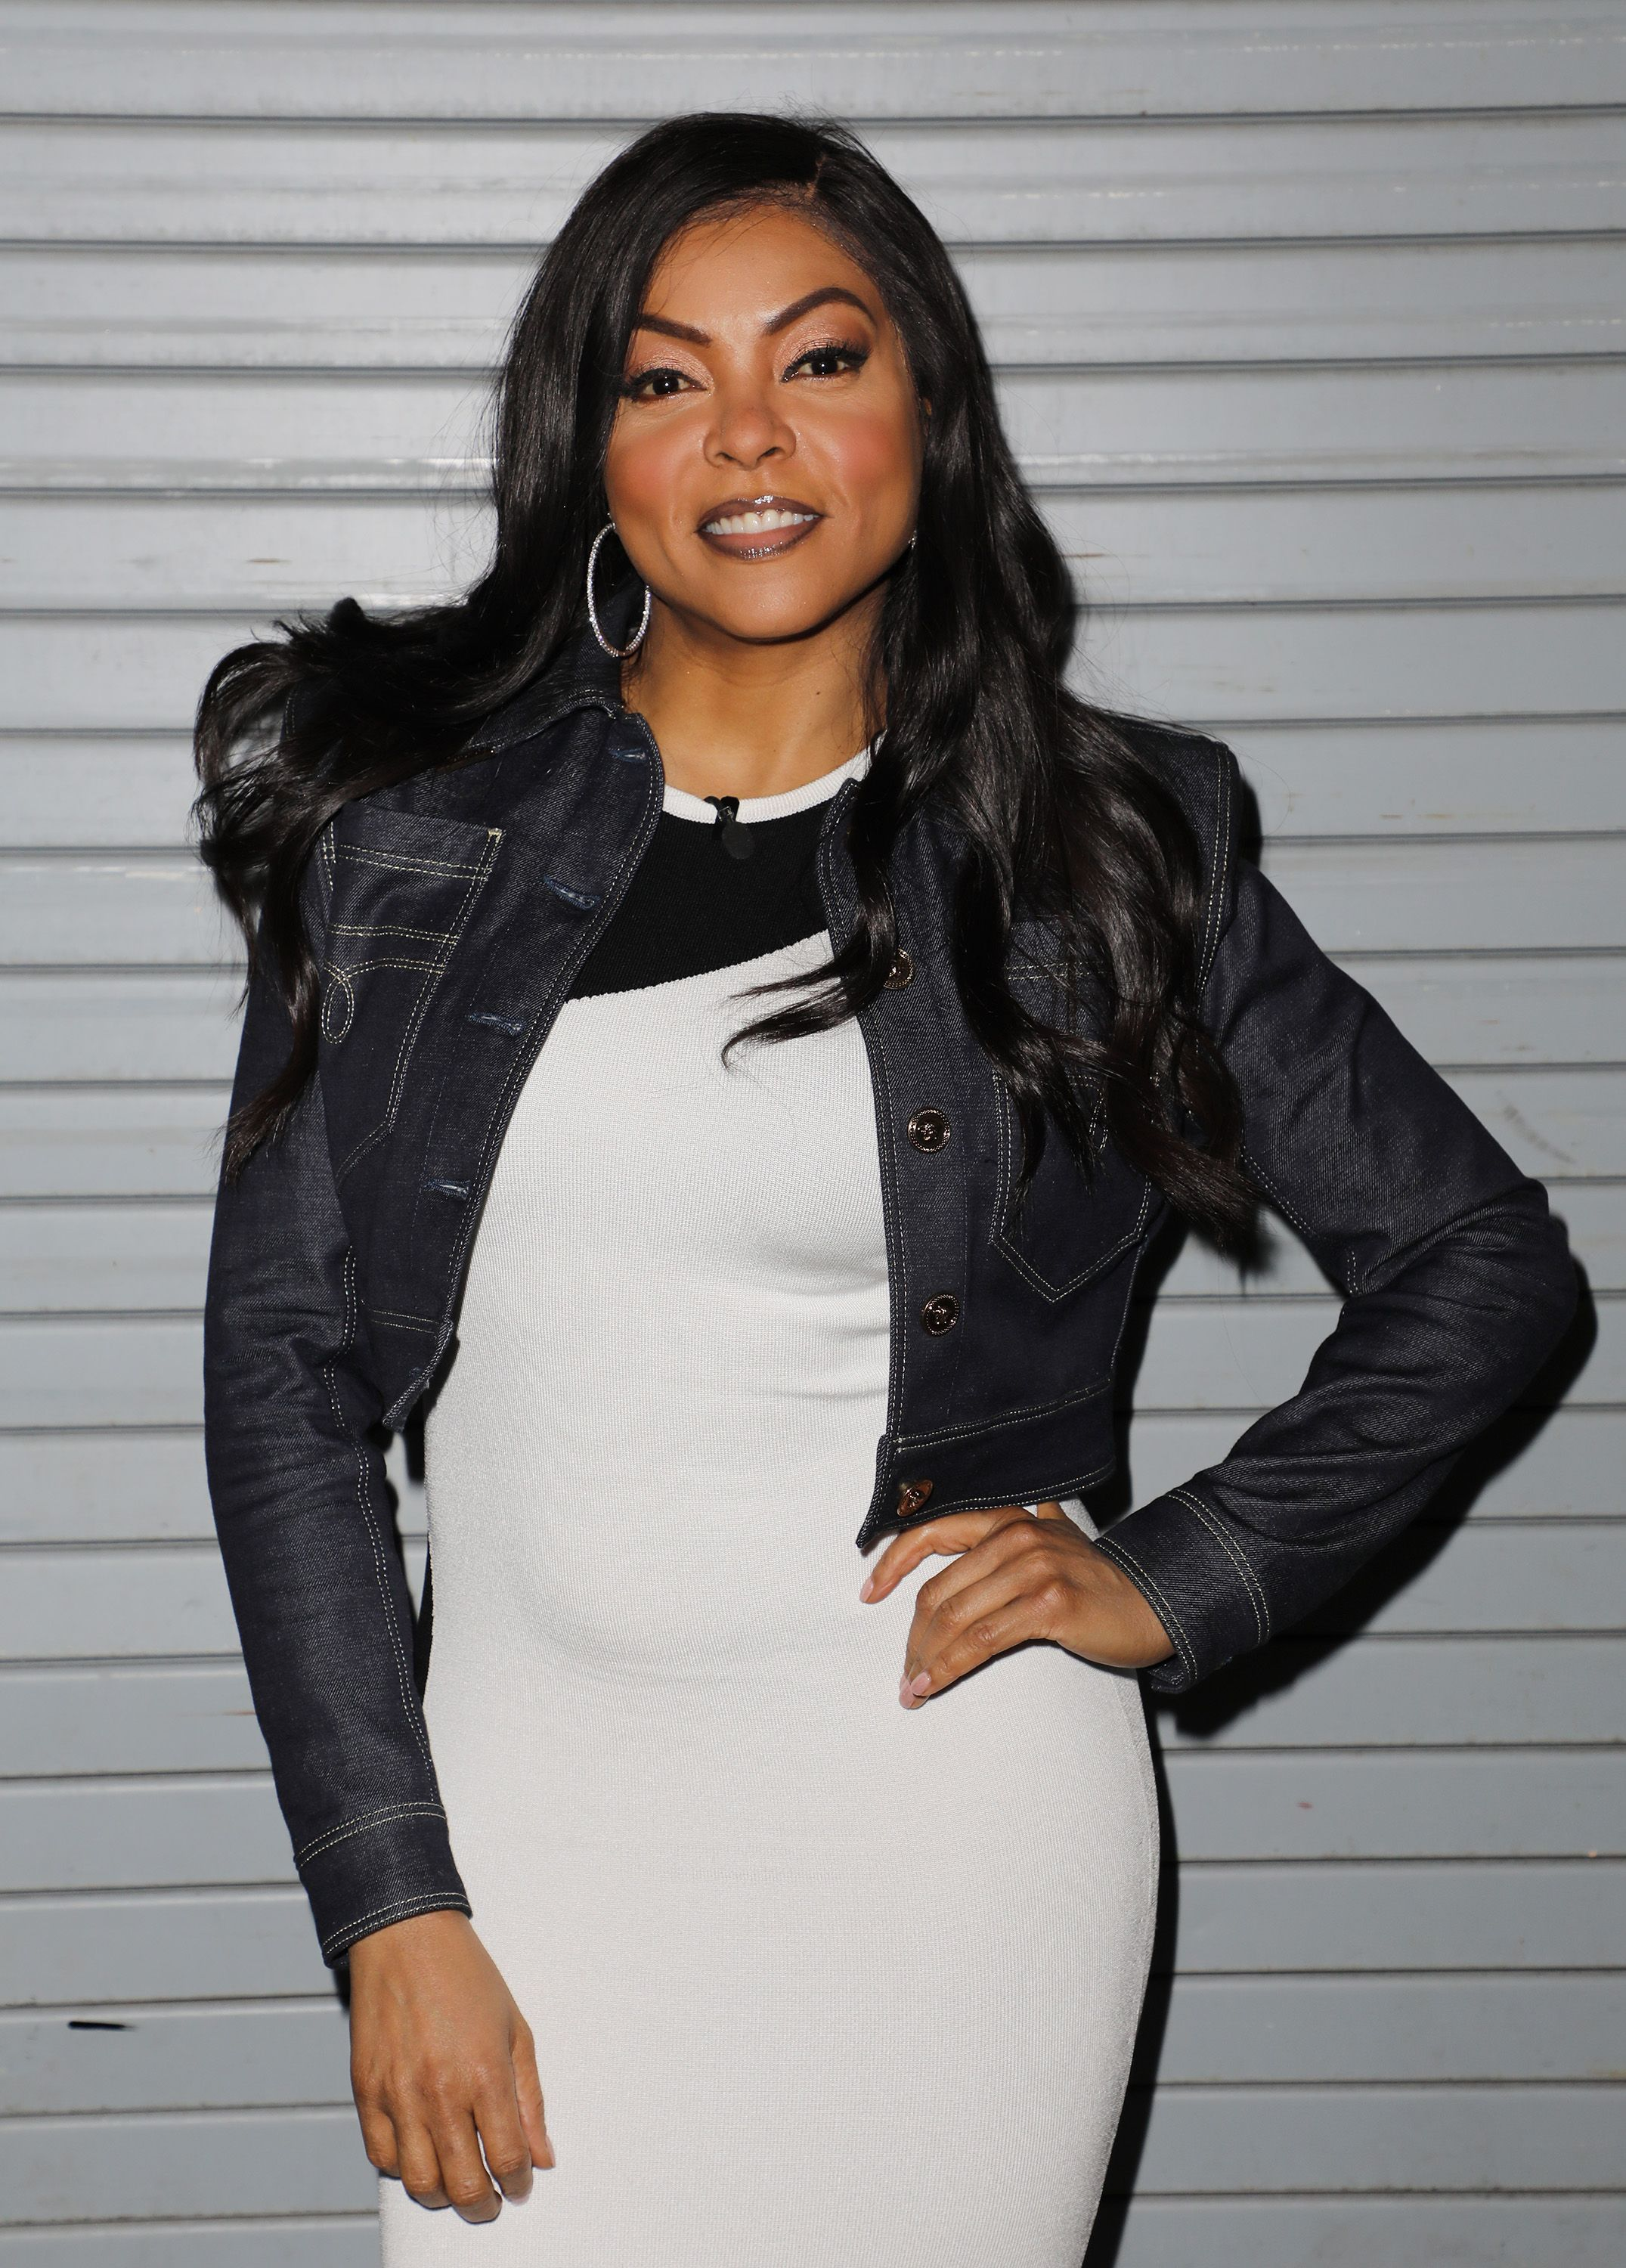 """Taraji P. Henson is seen on the set of """"Despierta America"""" at Univision Studios to promote the film """"ACRIMONY"""" on March 29, 2018.   Source: Getty Images"""